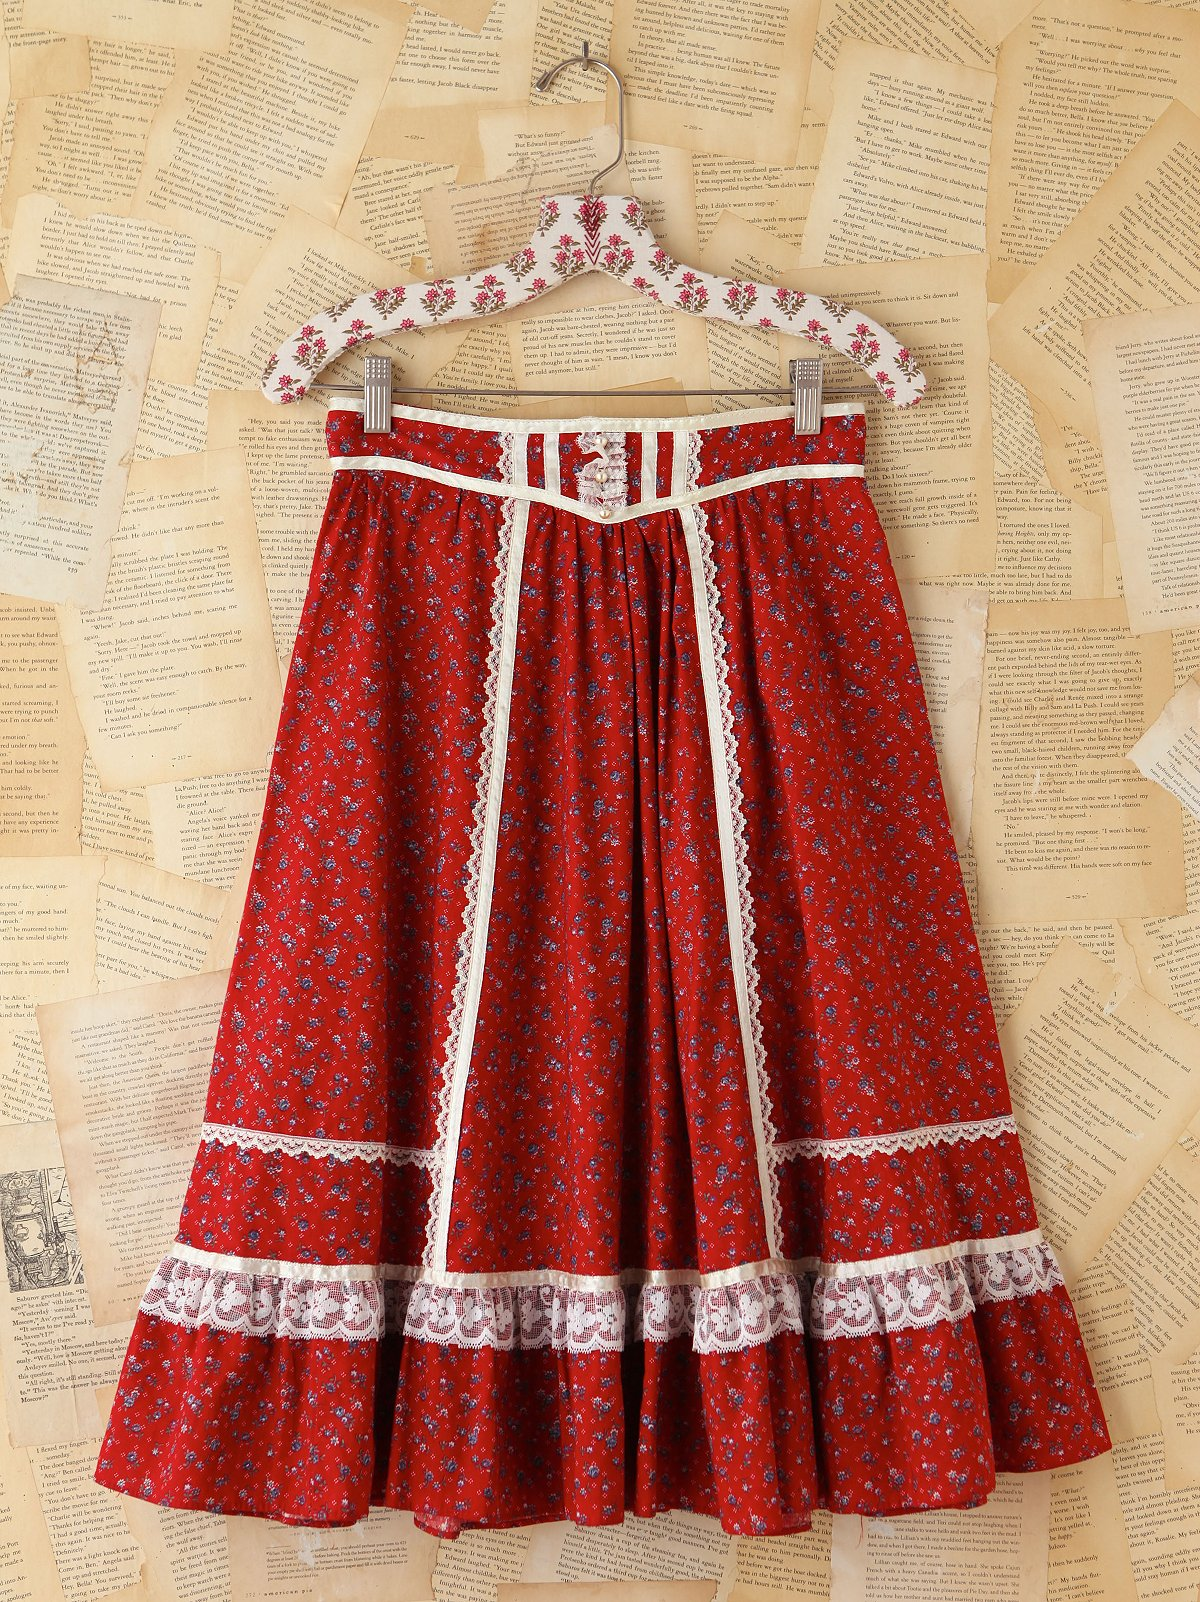 Vintage Lace Tiered Floral Skirt